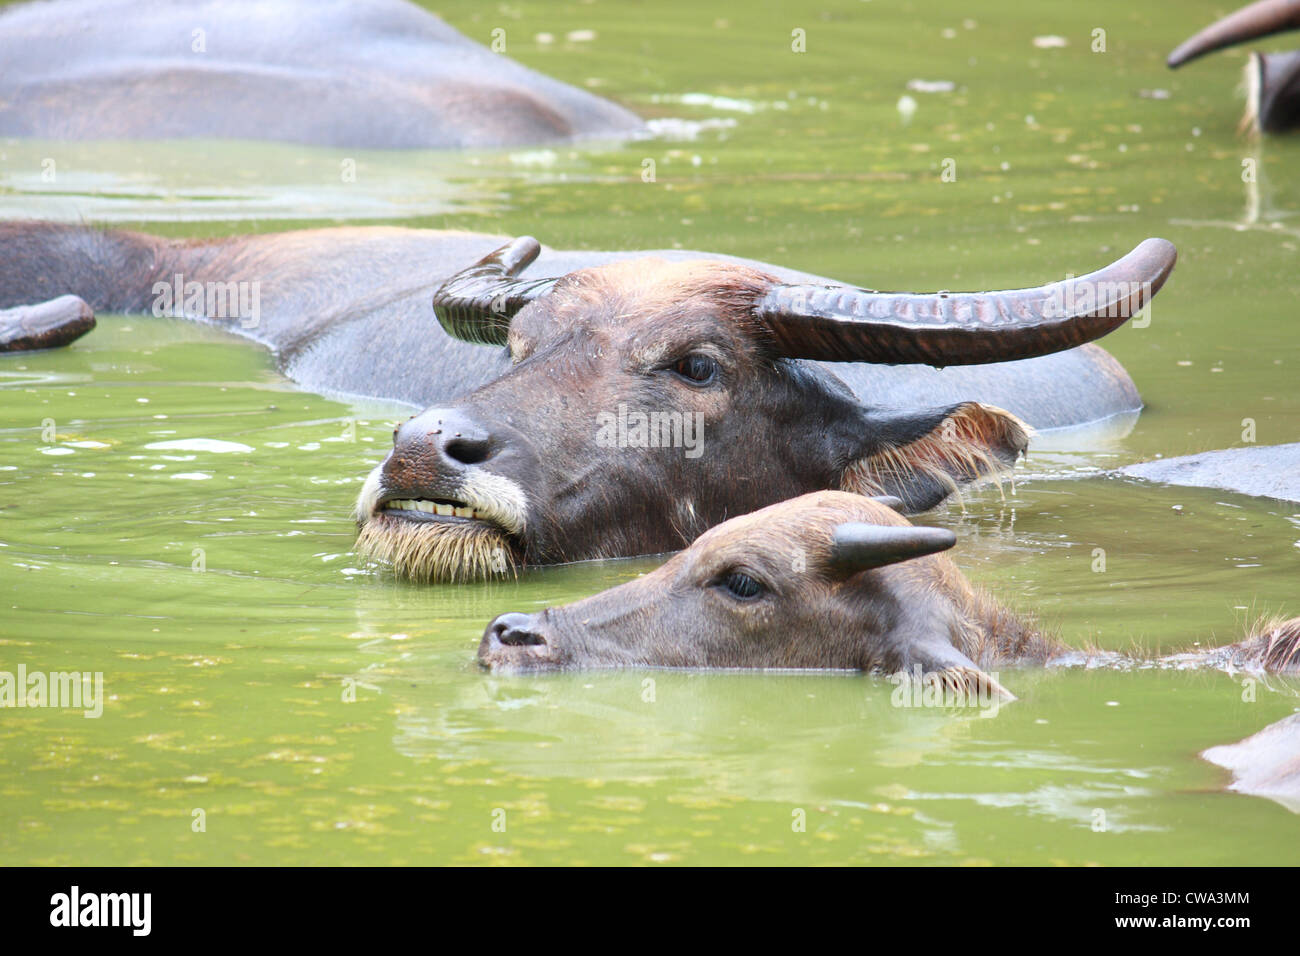 Buffalo rest in emerald pond - Stock Image